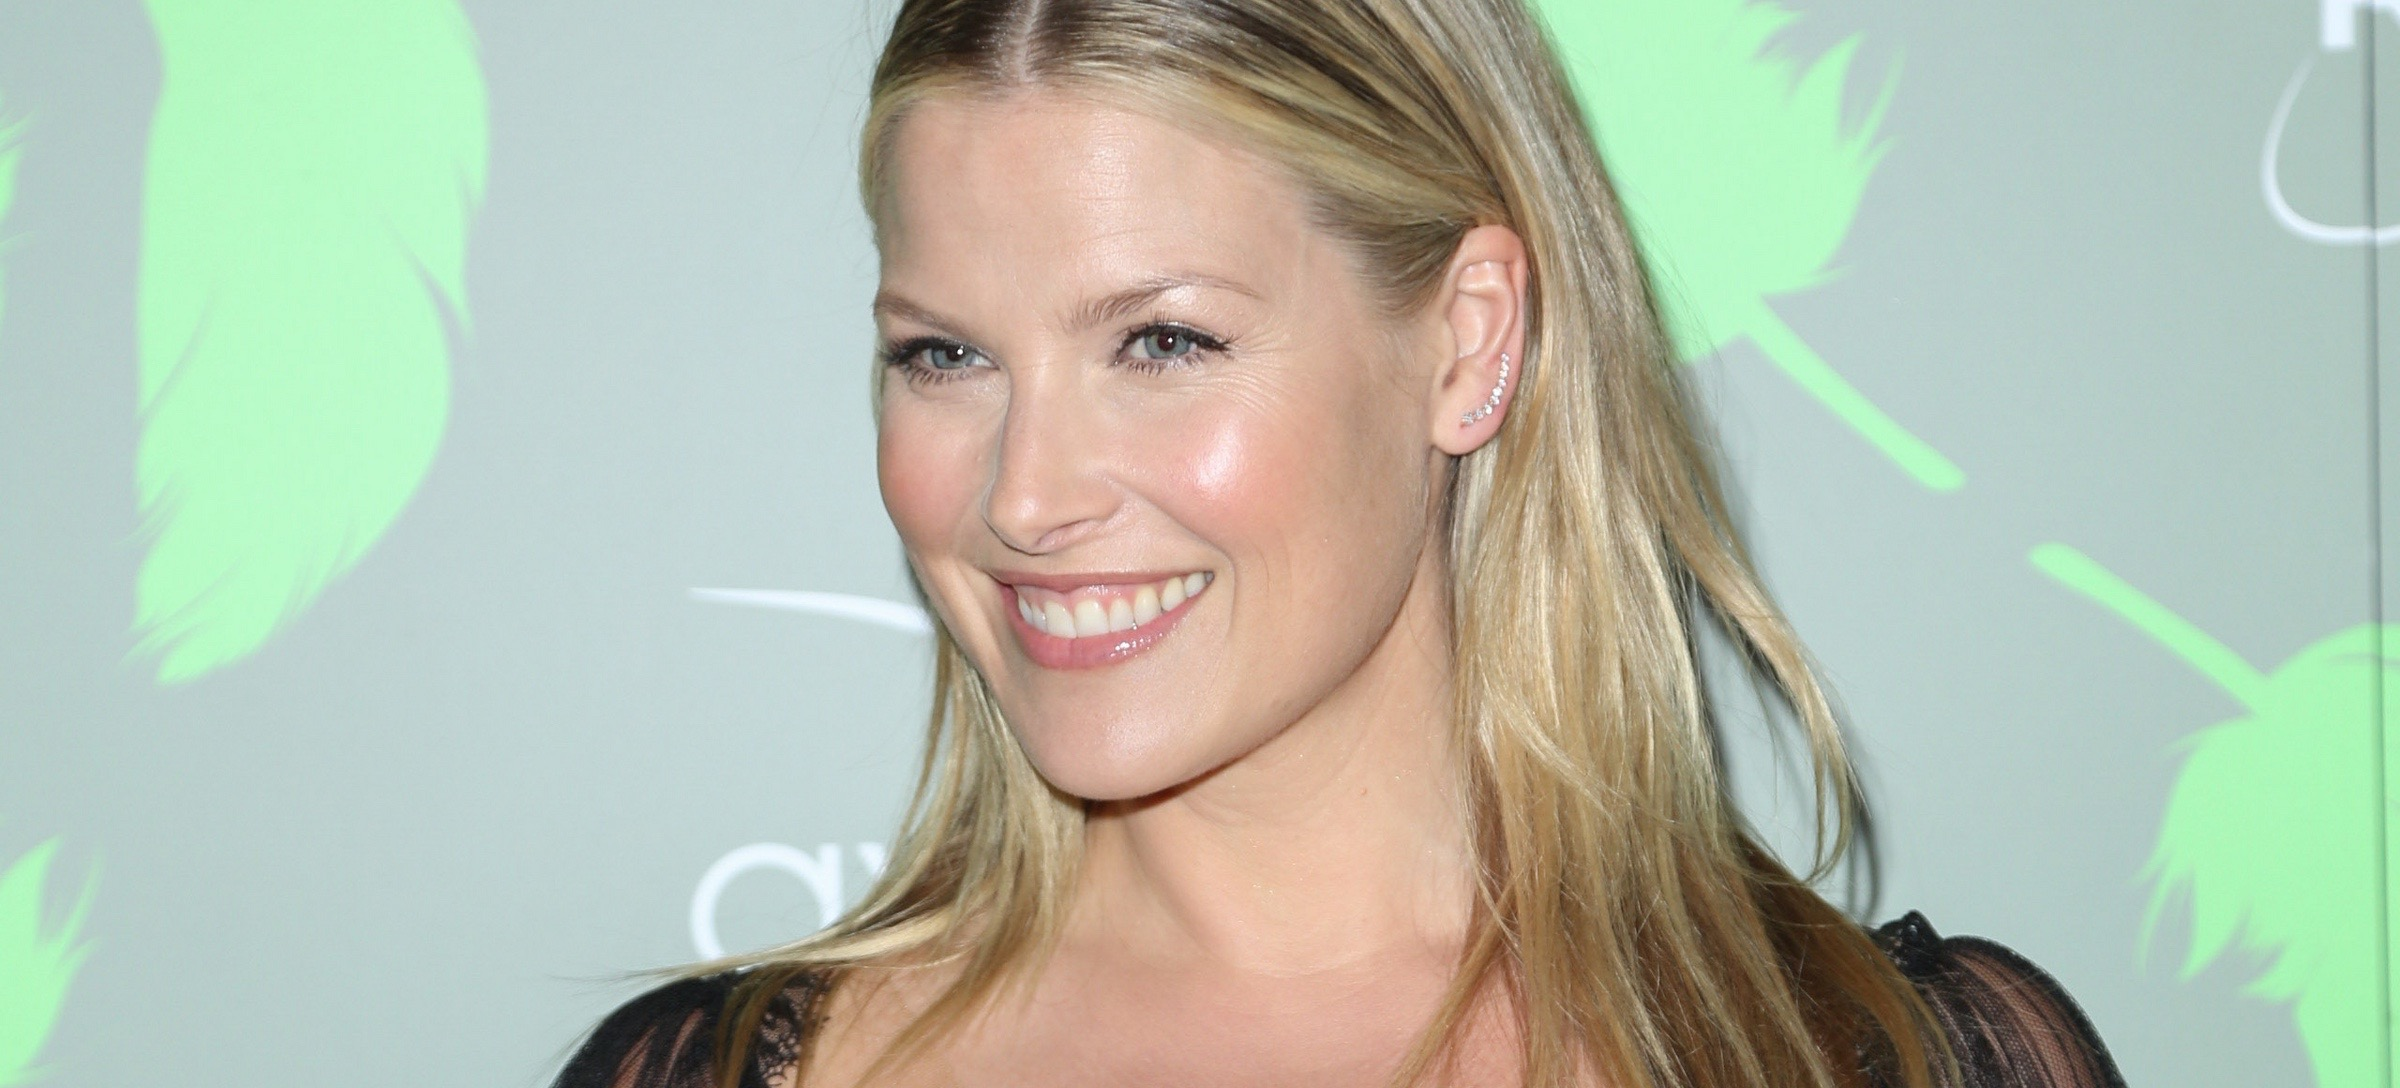 Actress Ali Larter On Food Fads, Beauty Routines, And Life Advice